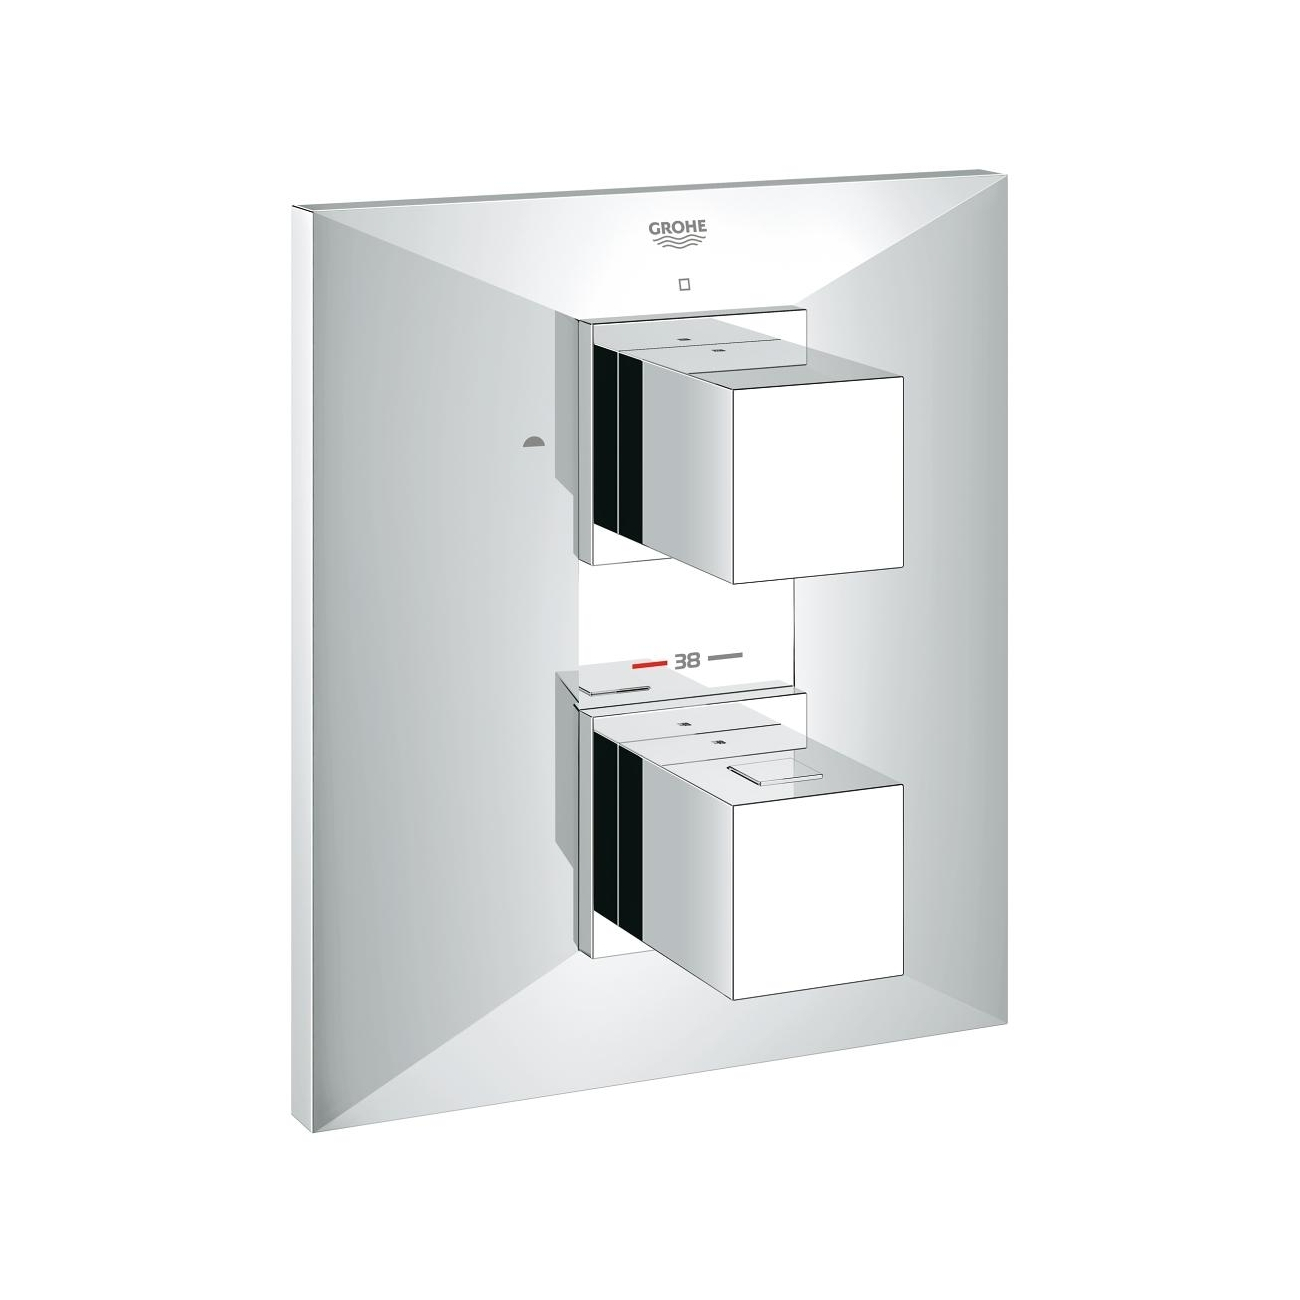 GROHE BRILLIANT Thermostat with integrated 2-way diverter for shower